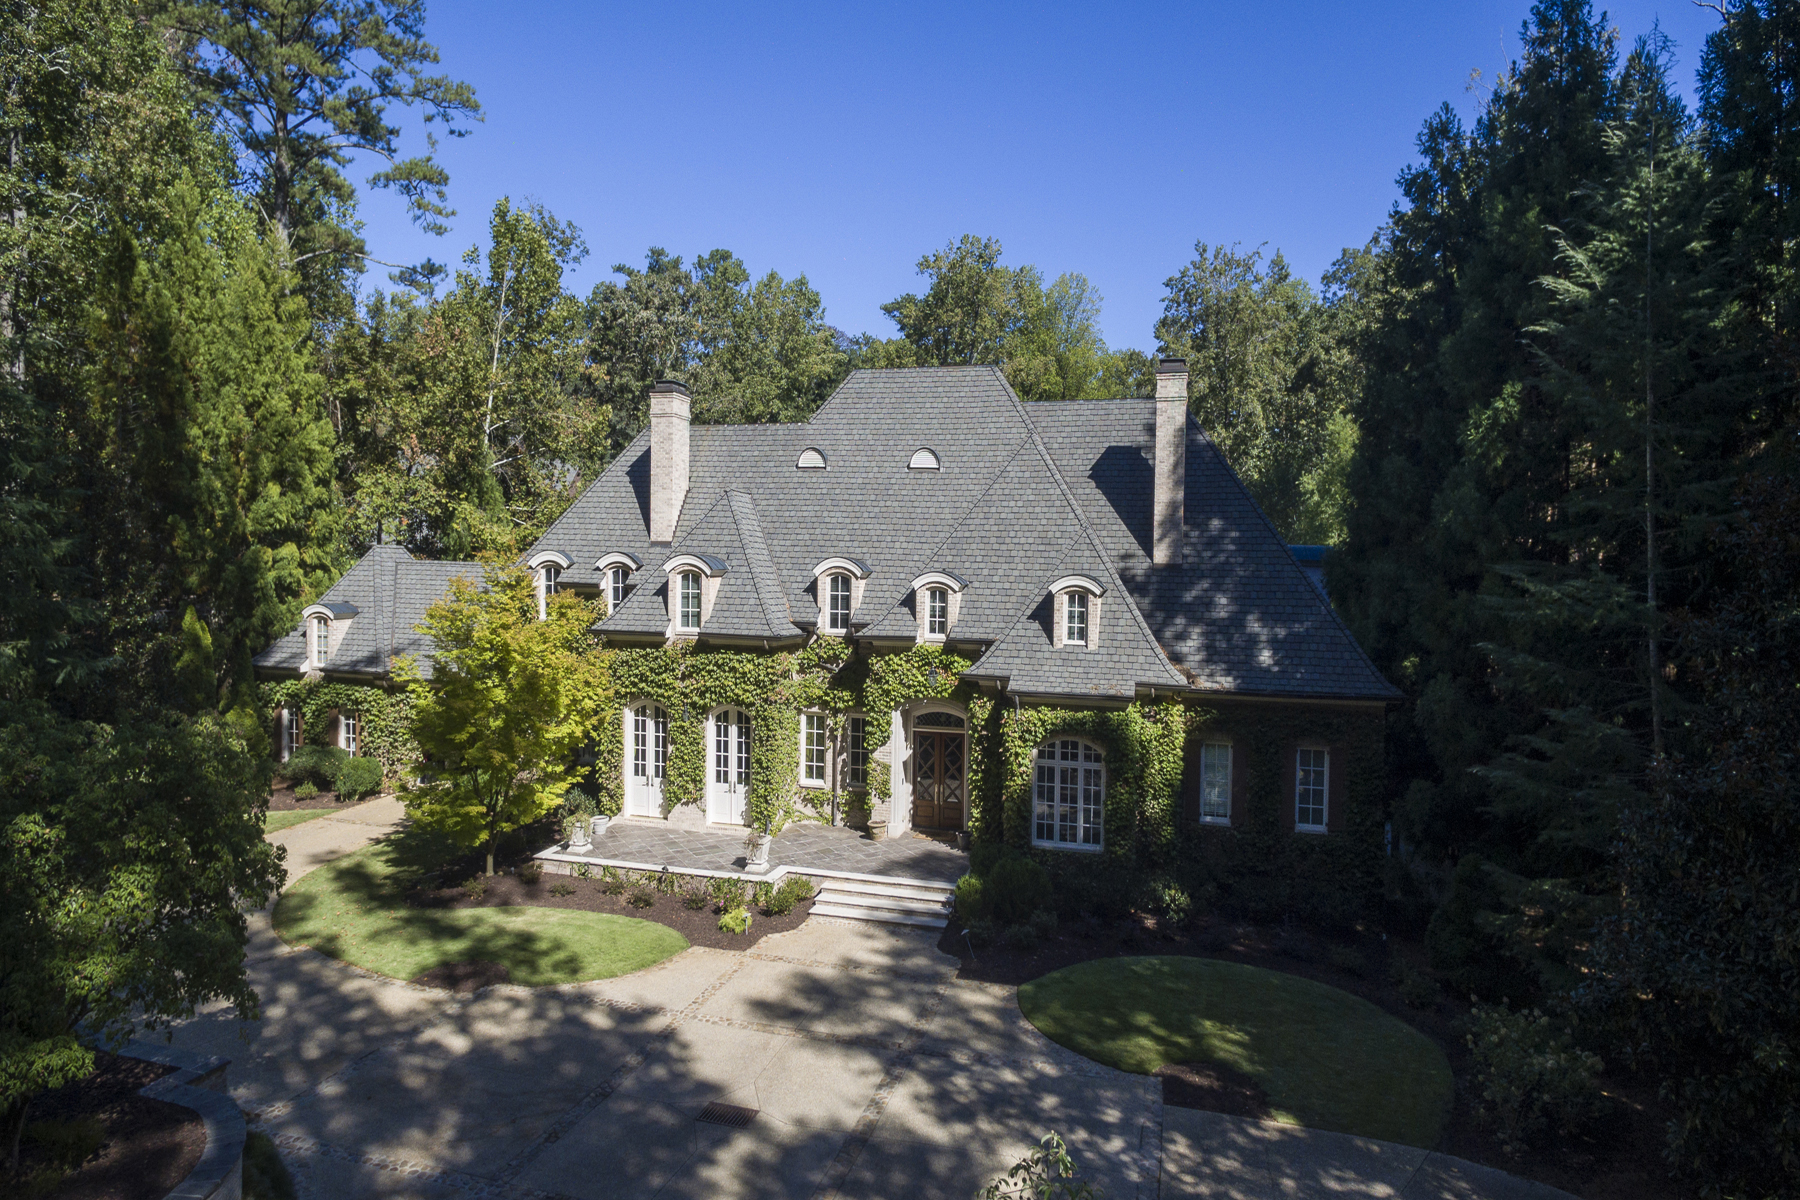 Maison unifamiliale pour l Vente à Gorgeous Gated Estate Property With Separate Large Guest House 714 W Conway Drive NW Buckhead, Atlanta, Georgia, 30327 États-Unis